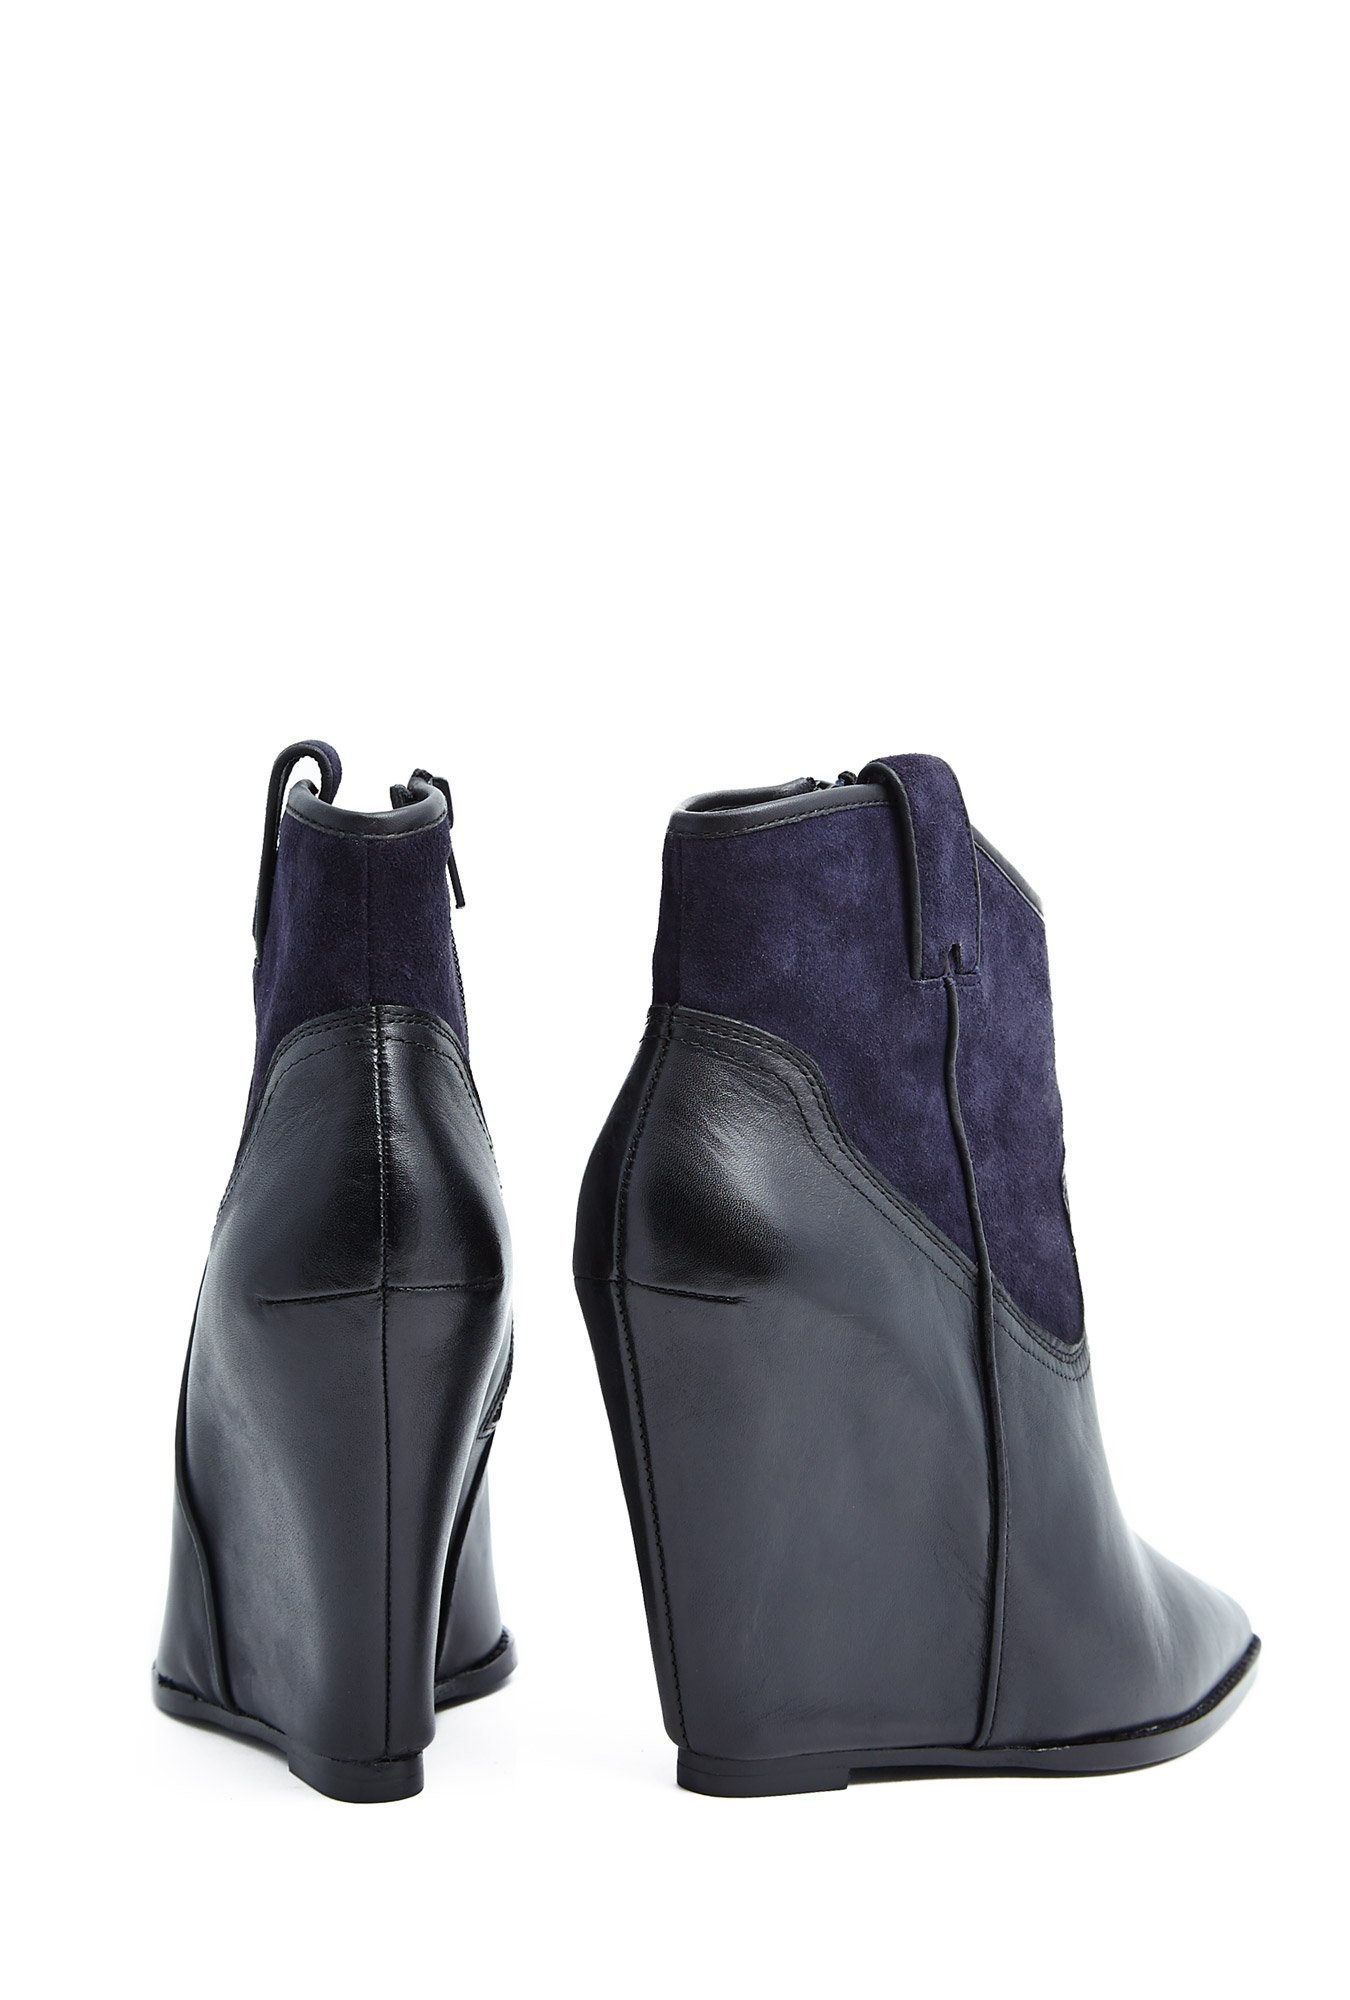 ash jude navy black contrast wedge boot in blue ash lyst